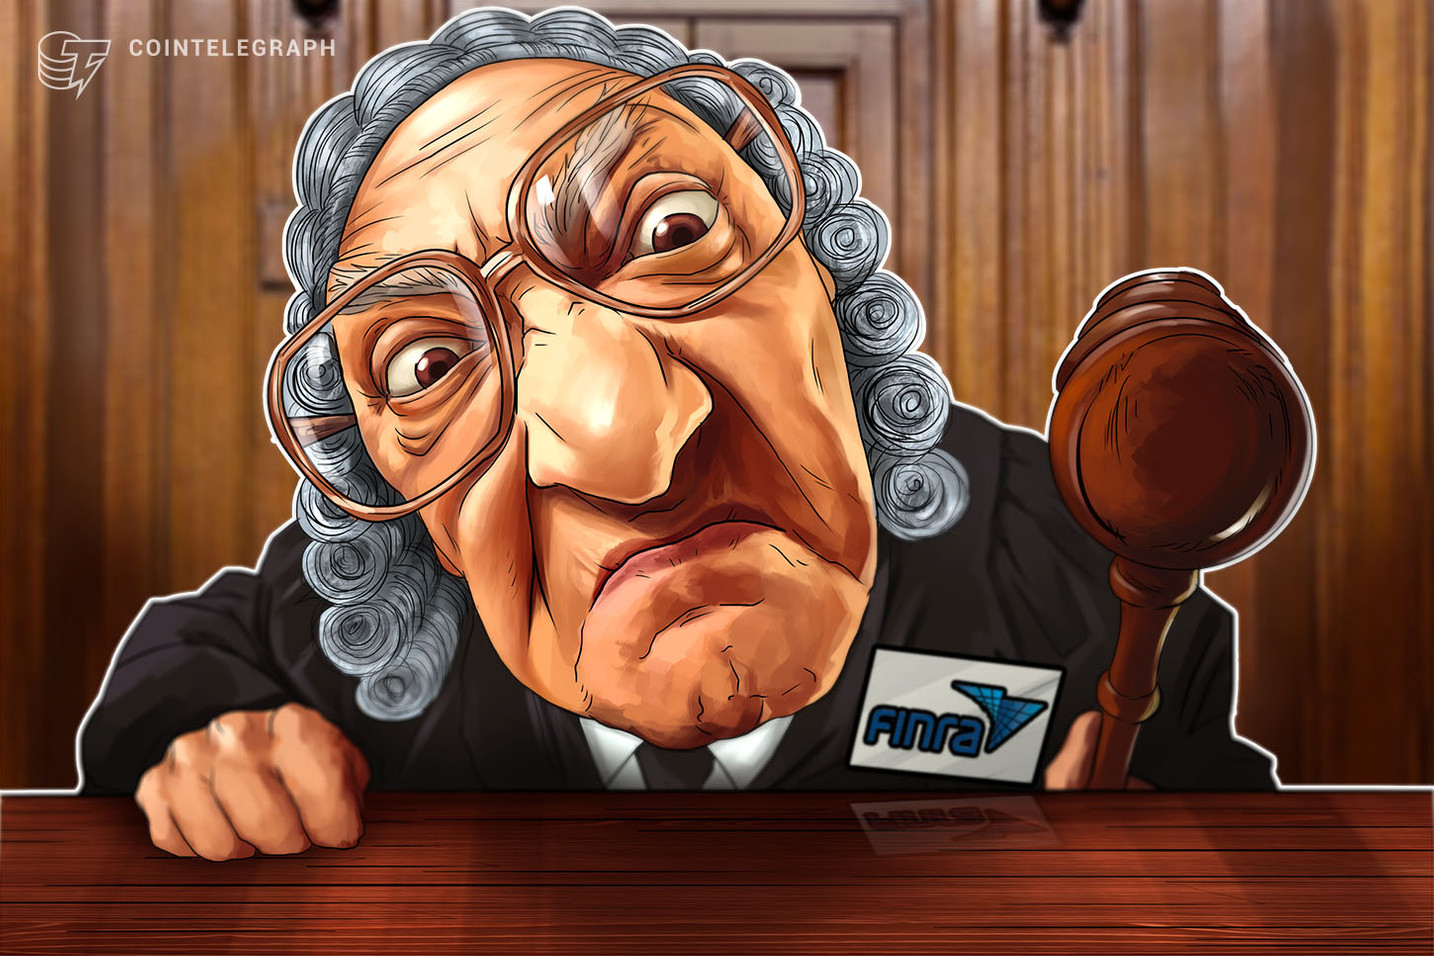 FINRA Fines Tezos Cofounder $20k For Morgan Stanley Disclosure Failures